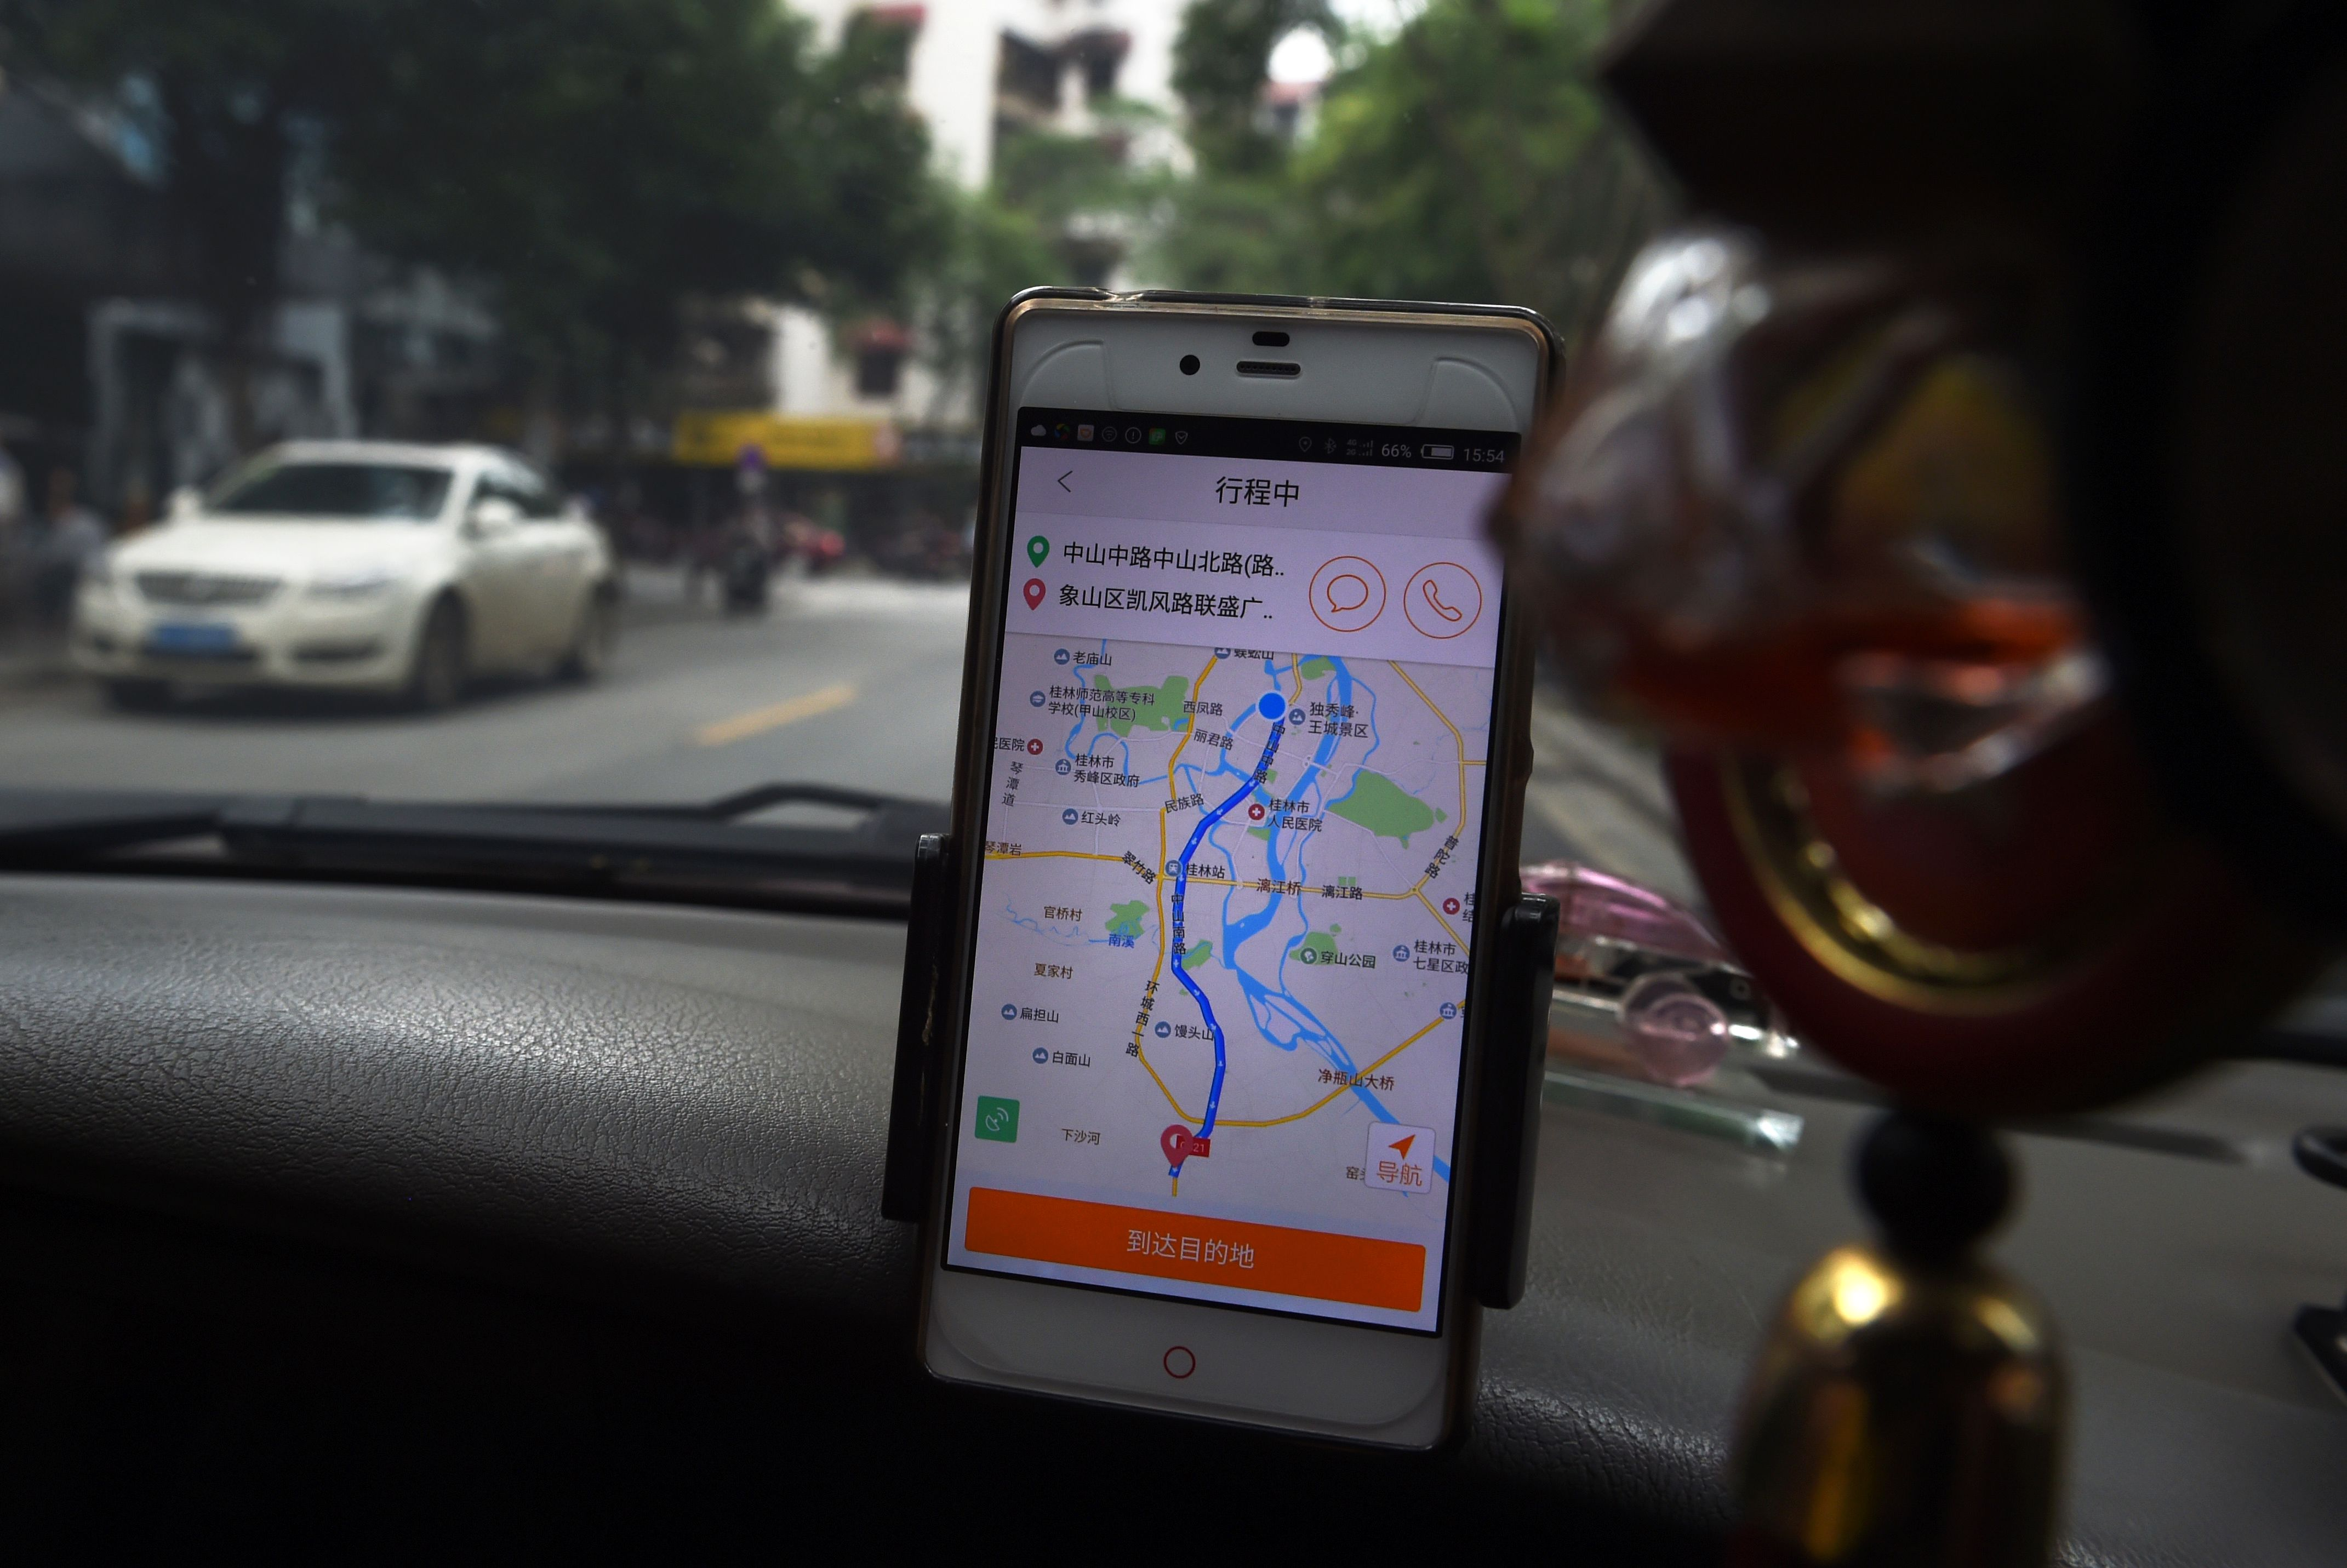 Uber says it will continue to serve residents in China's Macau region.